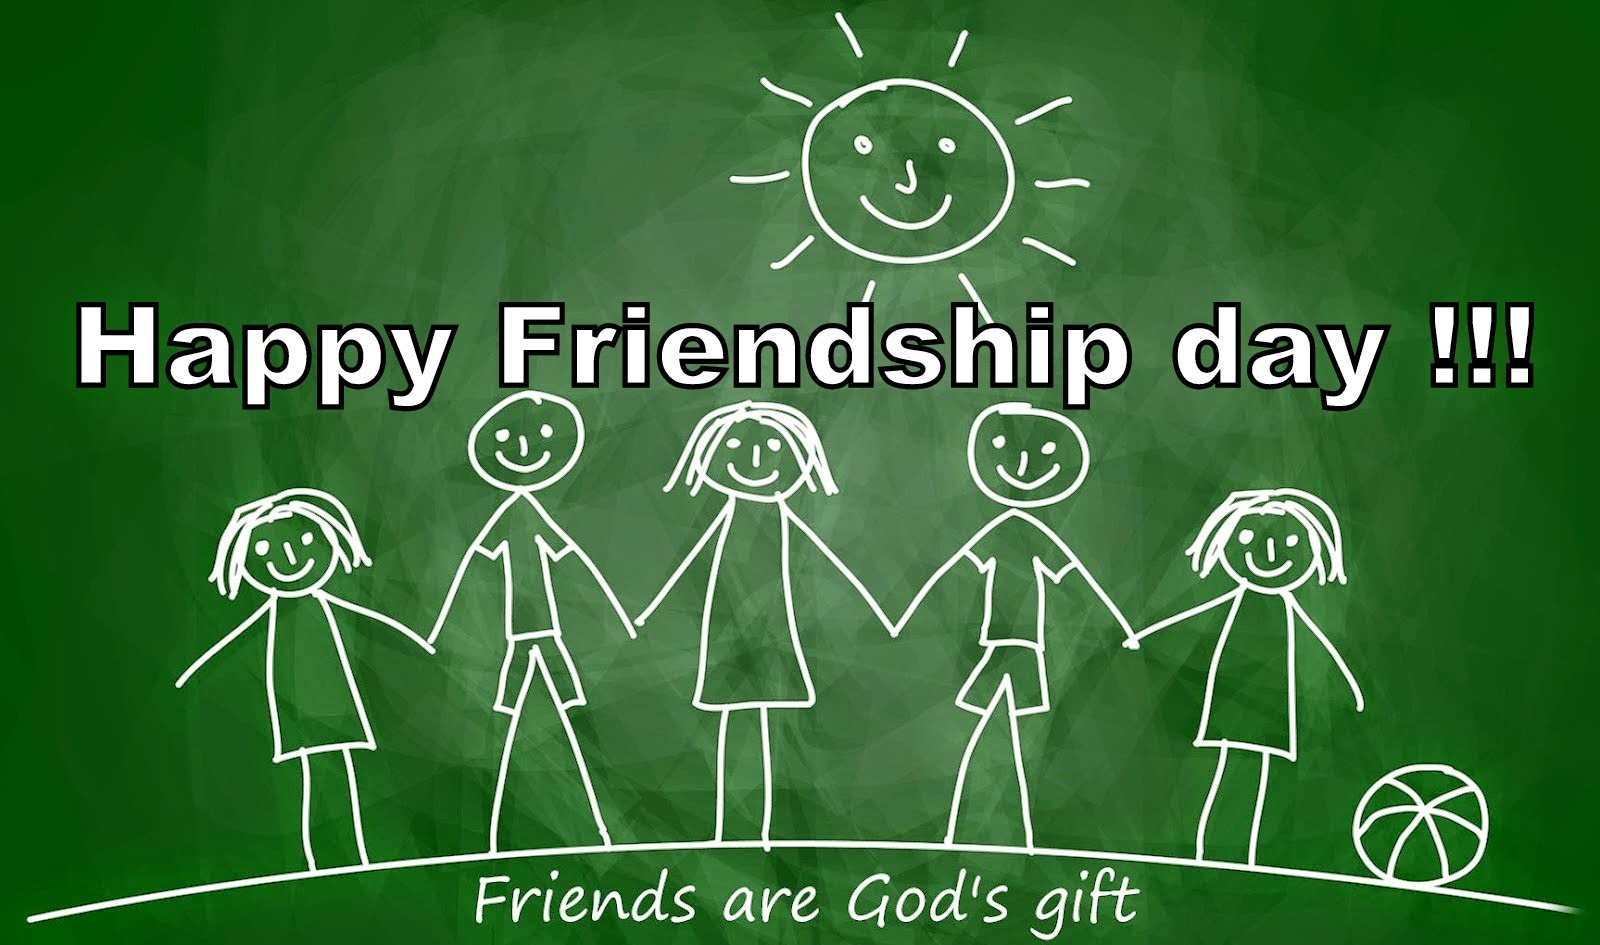 happy friendship day chalk art friends gods gift wallpaper